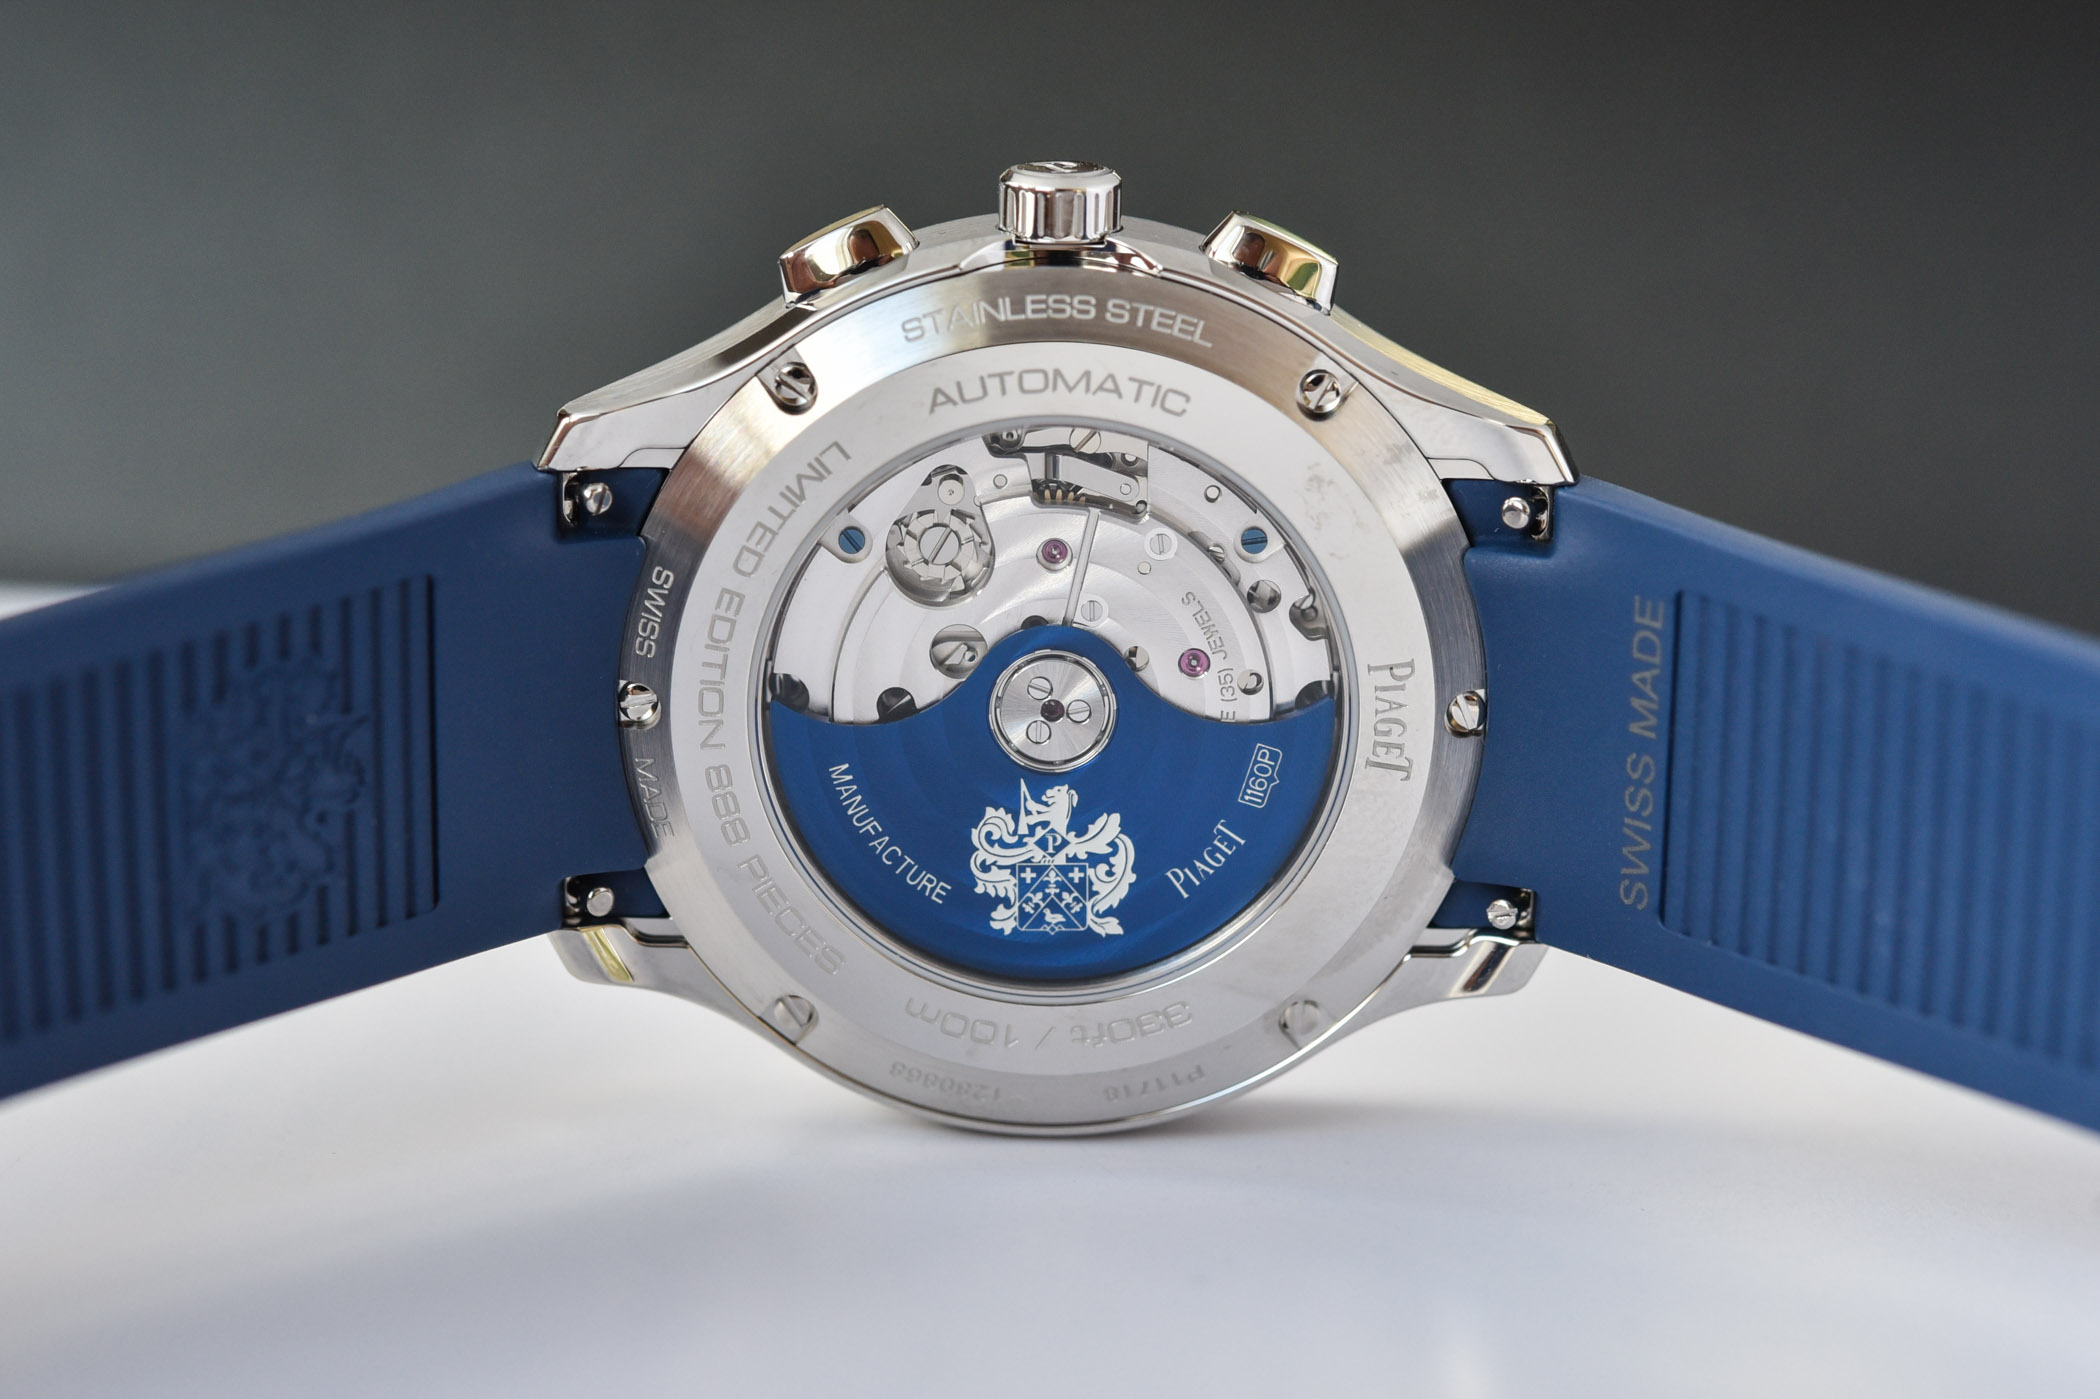 Piaget-Polo-Blue-Panda-Automatic-Chronograph-42mm-Rubber-Strap-G0A46013-hands-on-1.jpg